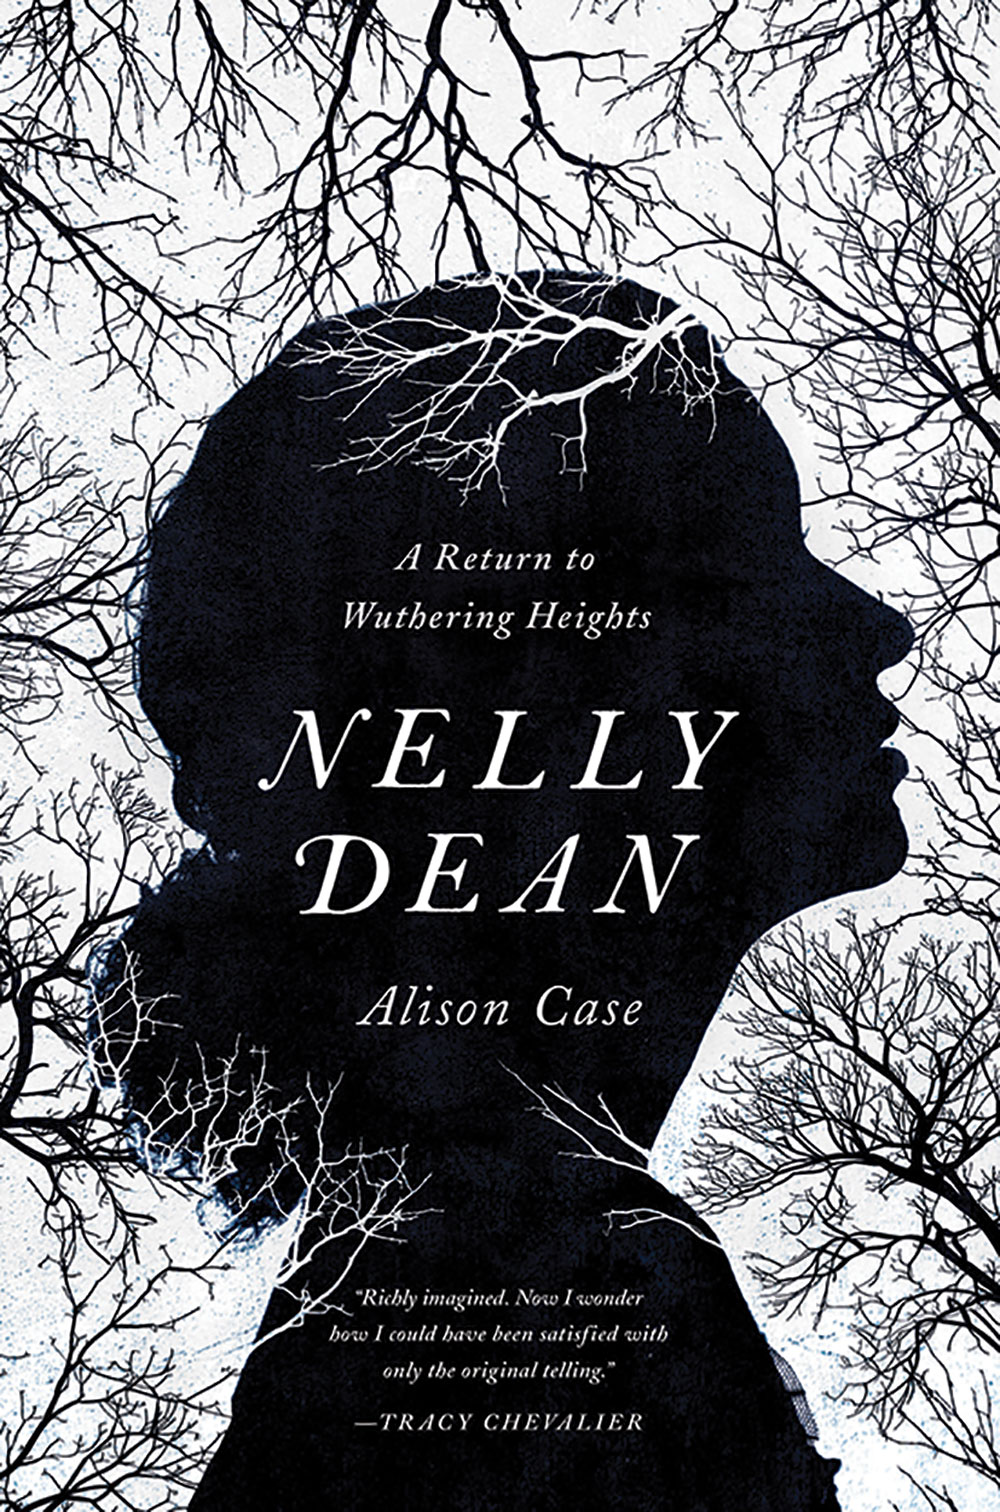 nelly dean as an unreliable narrator Both nelly dean and lockwood are unreliable narrators, who are unable to truly represent the perspectives of the other characters in the book since lockwood walks into wuthering heights unaware of the inhabitants' past, he is ignorant to his surroundings making him an unreliable narrator.